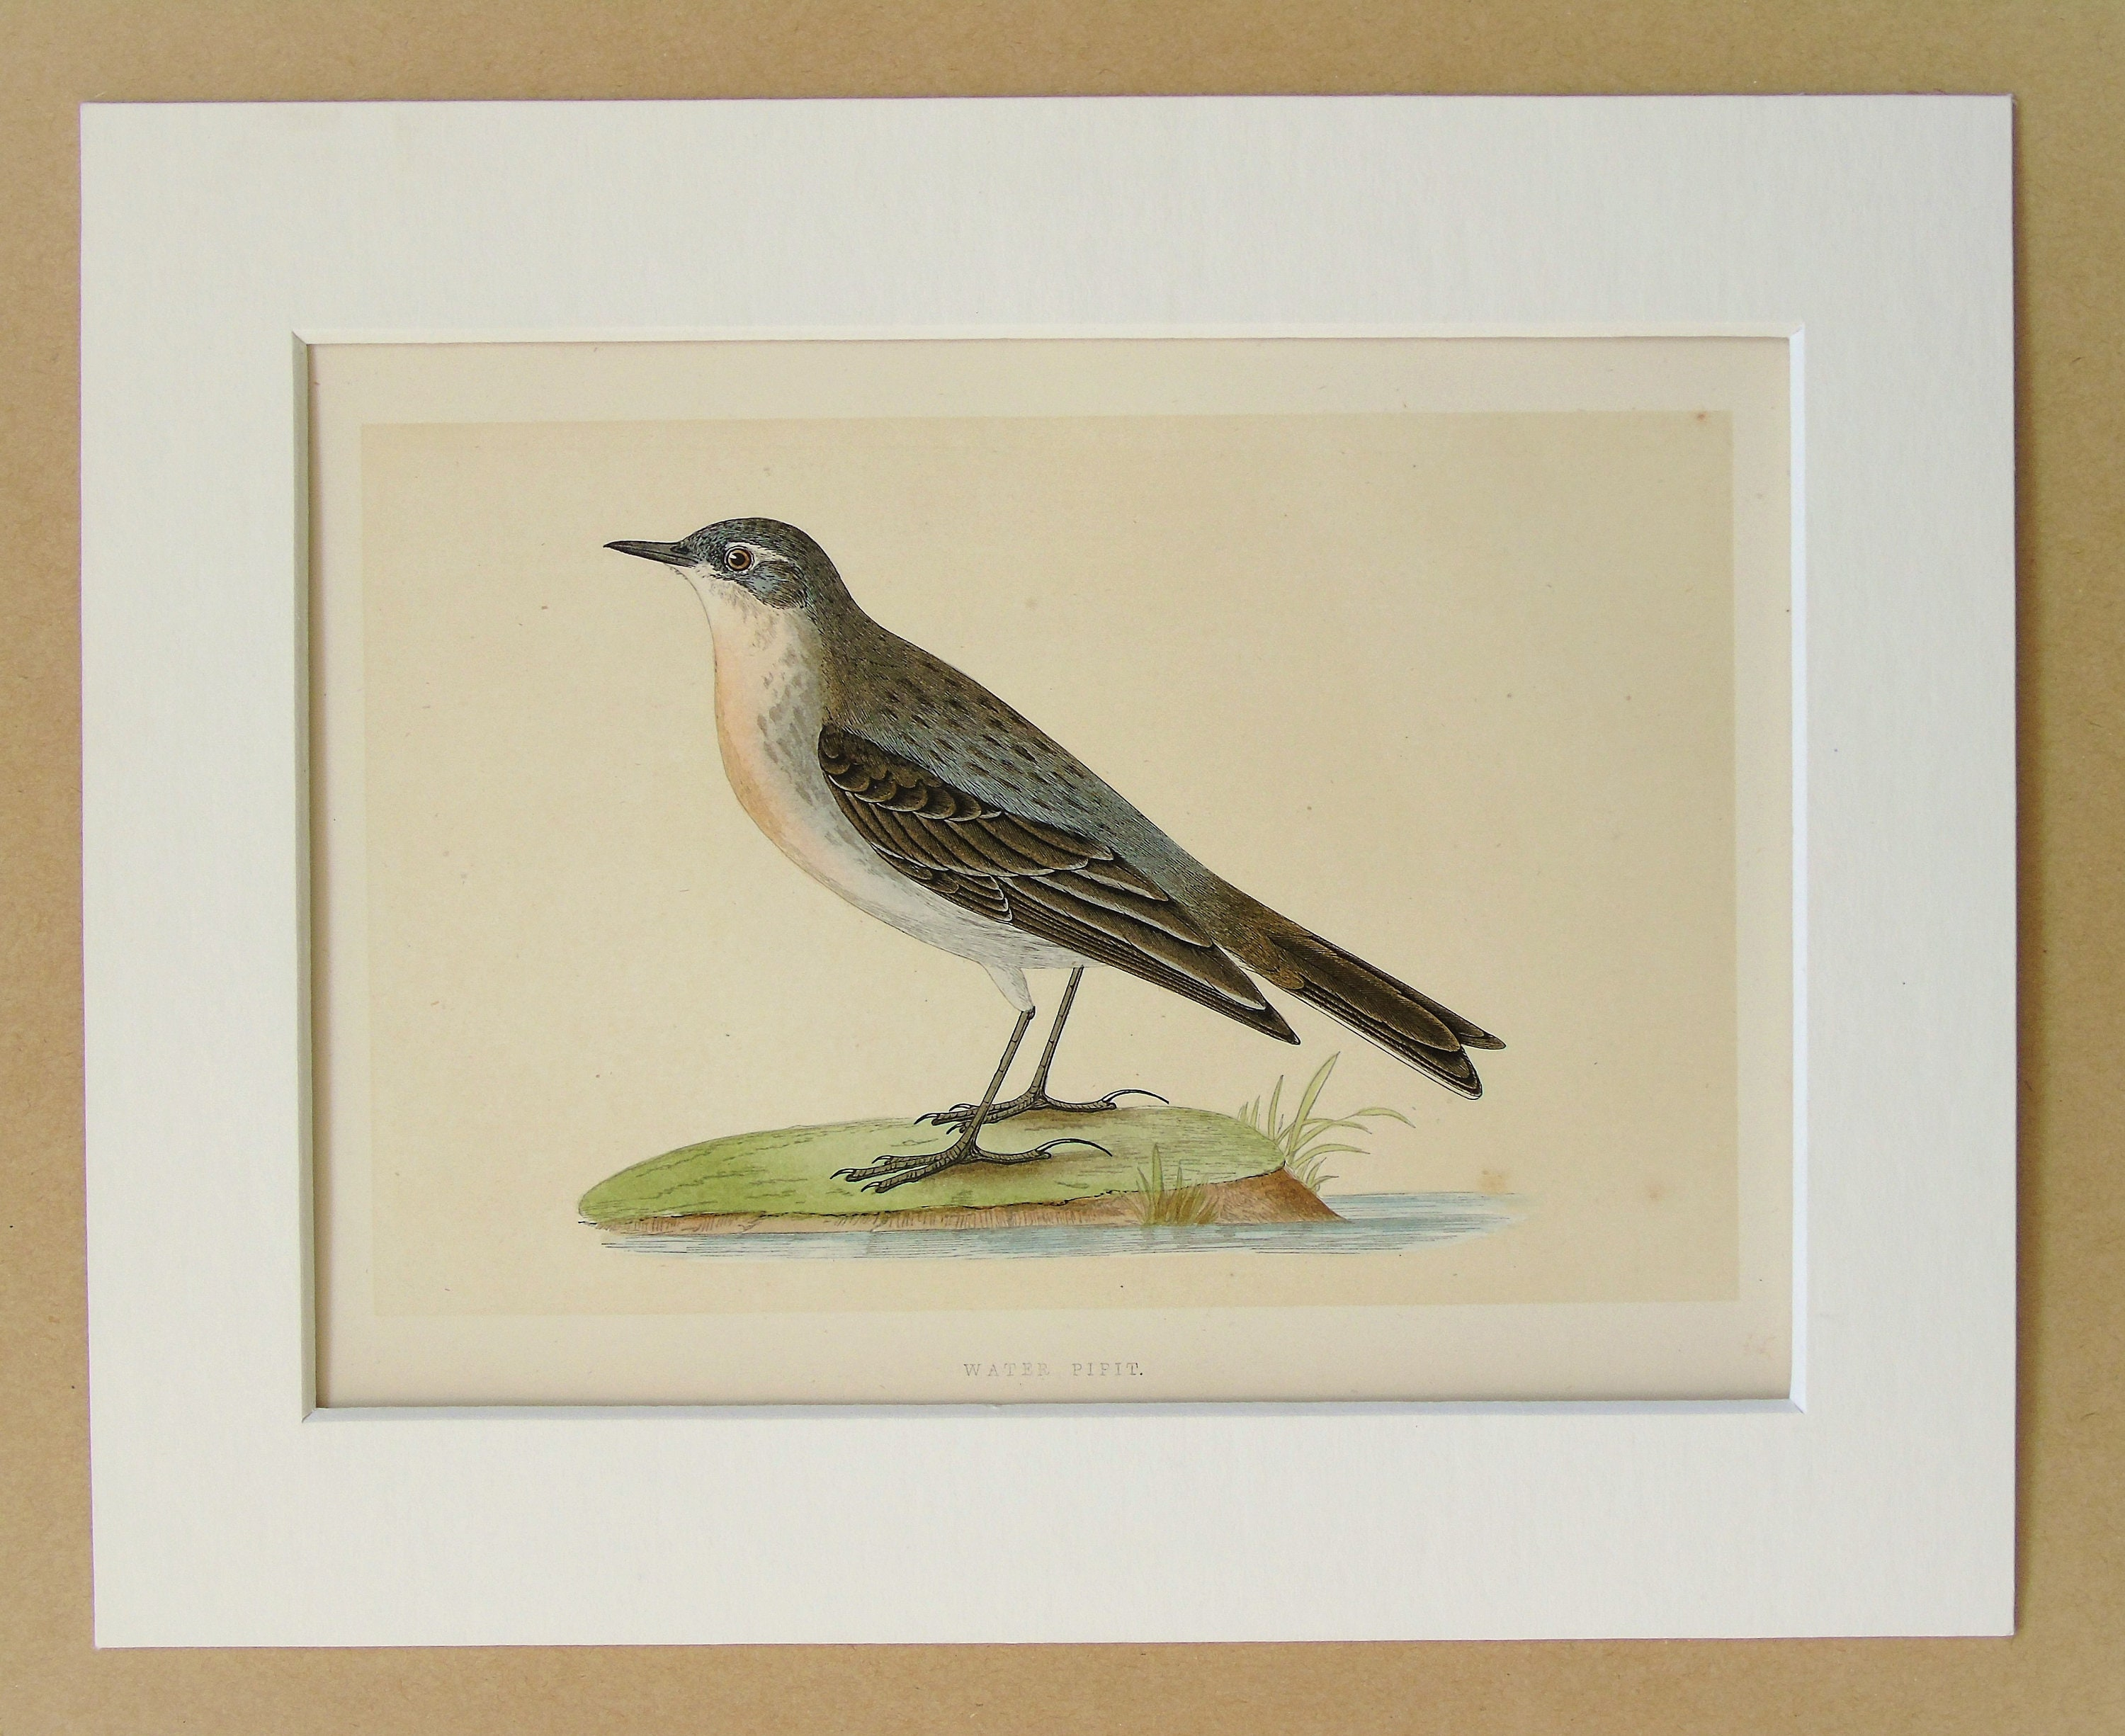 Water Pipit Antique Bird Print by Charles Bree Original